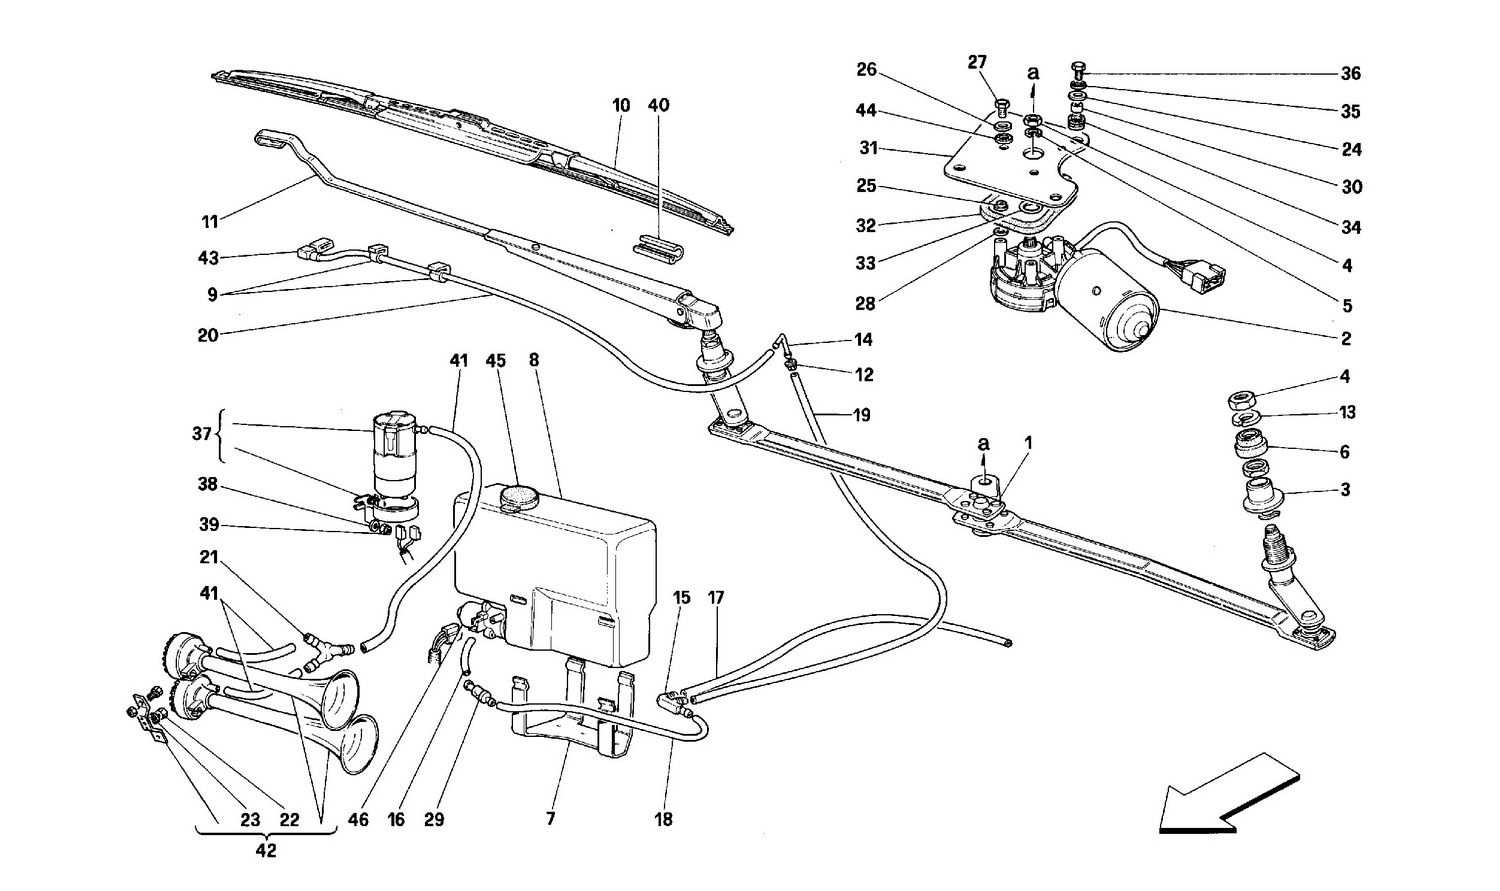 Schematic: Windshield Wiper And Horns